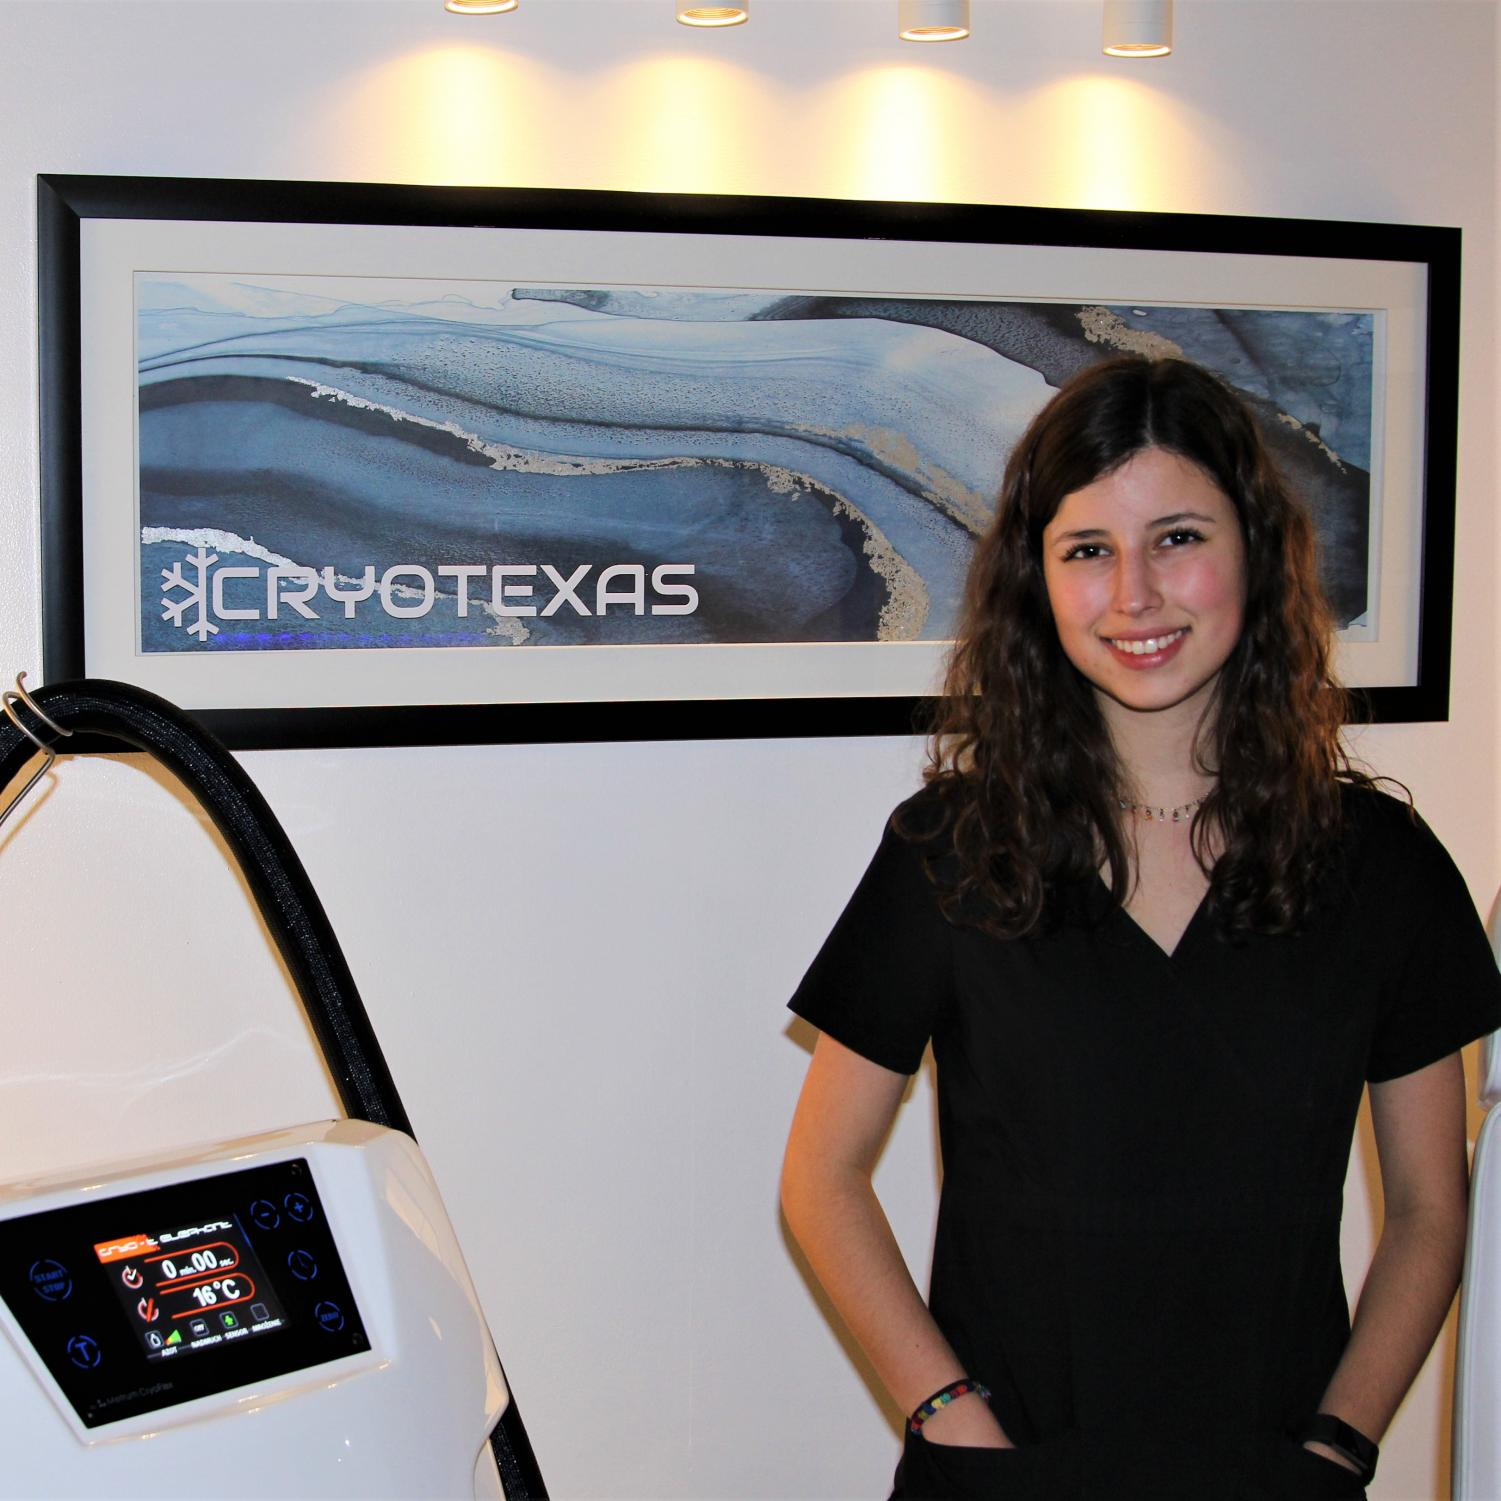 An employee at CryoTexas standing in front of one of the business's signs.